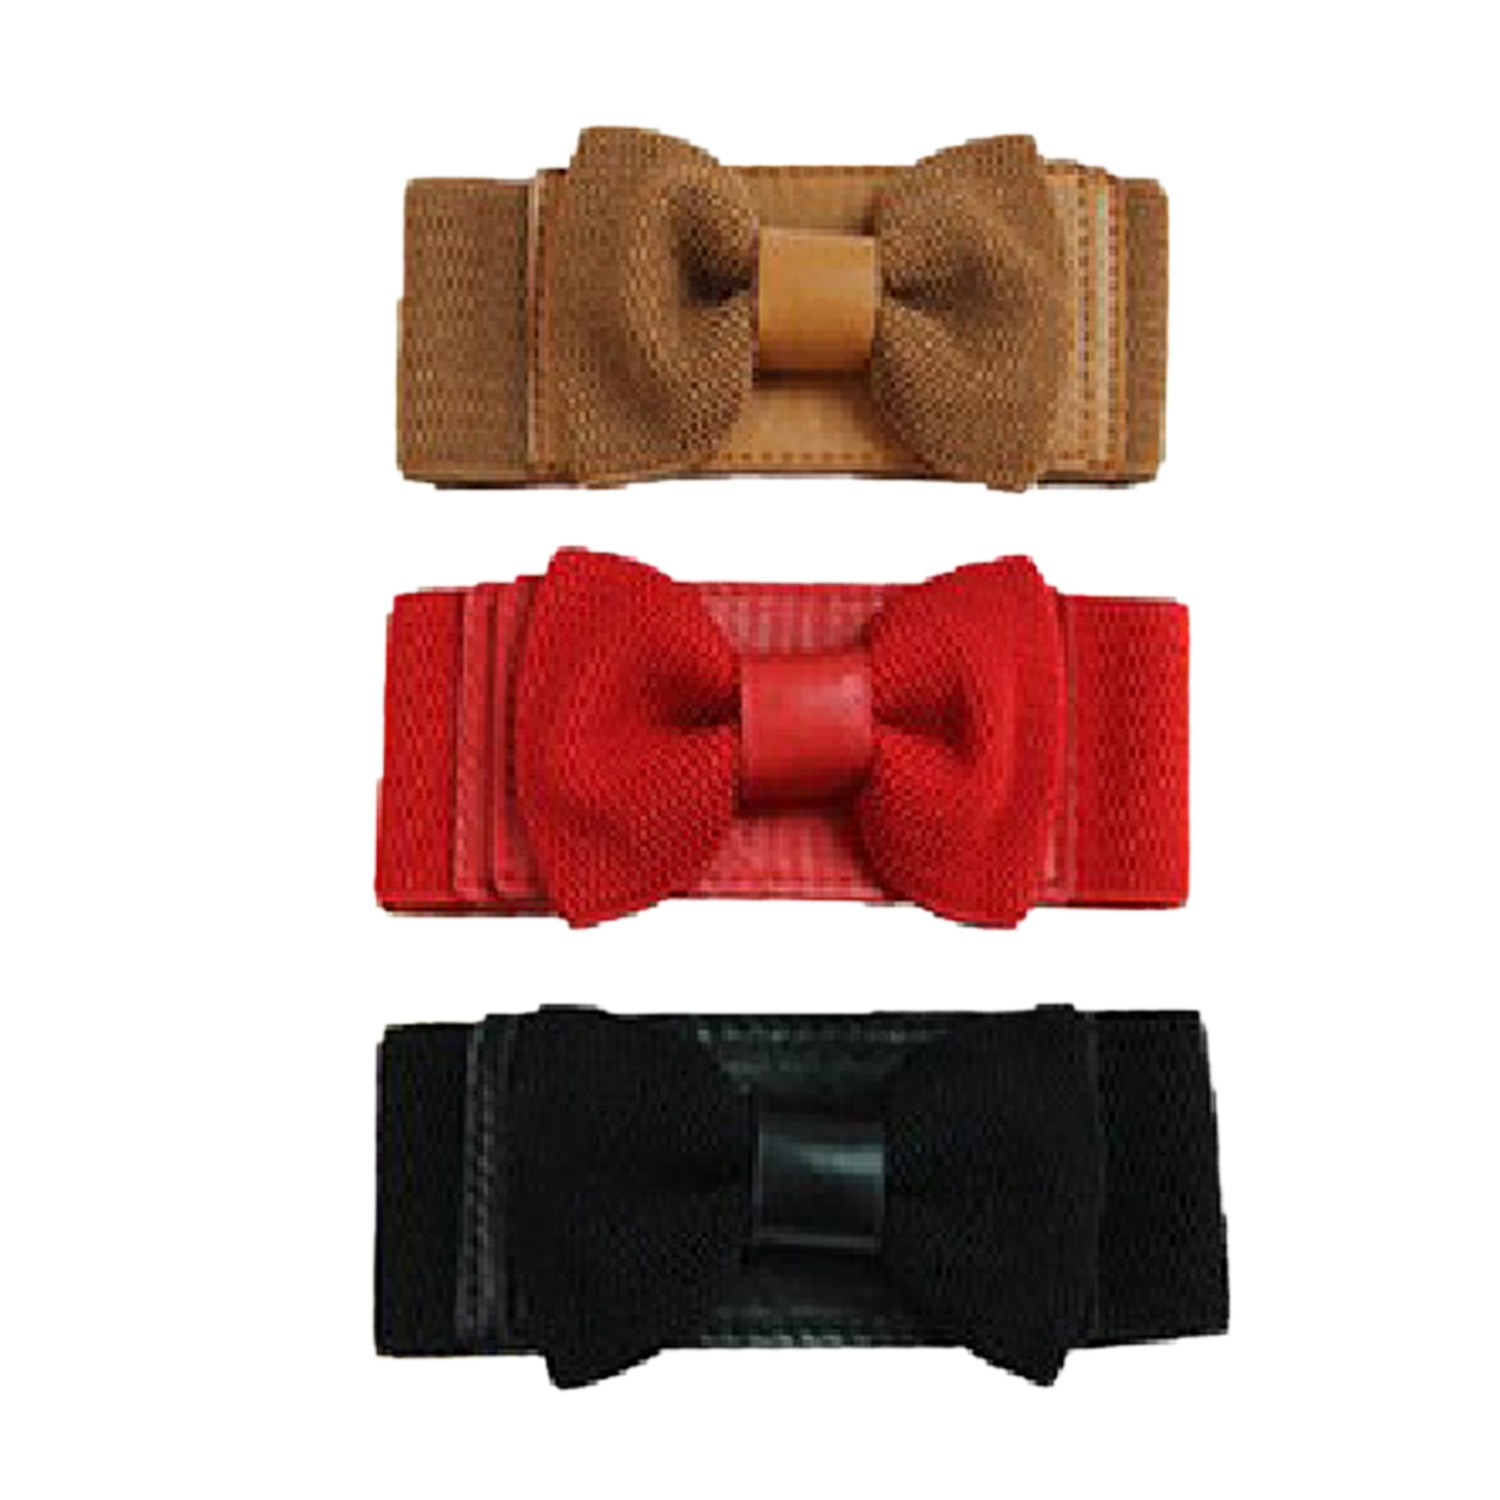 Gift Vintage Bow Woven Elastic Cinch Wide Belt Womens NEW Black/Brown/Red